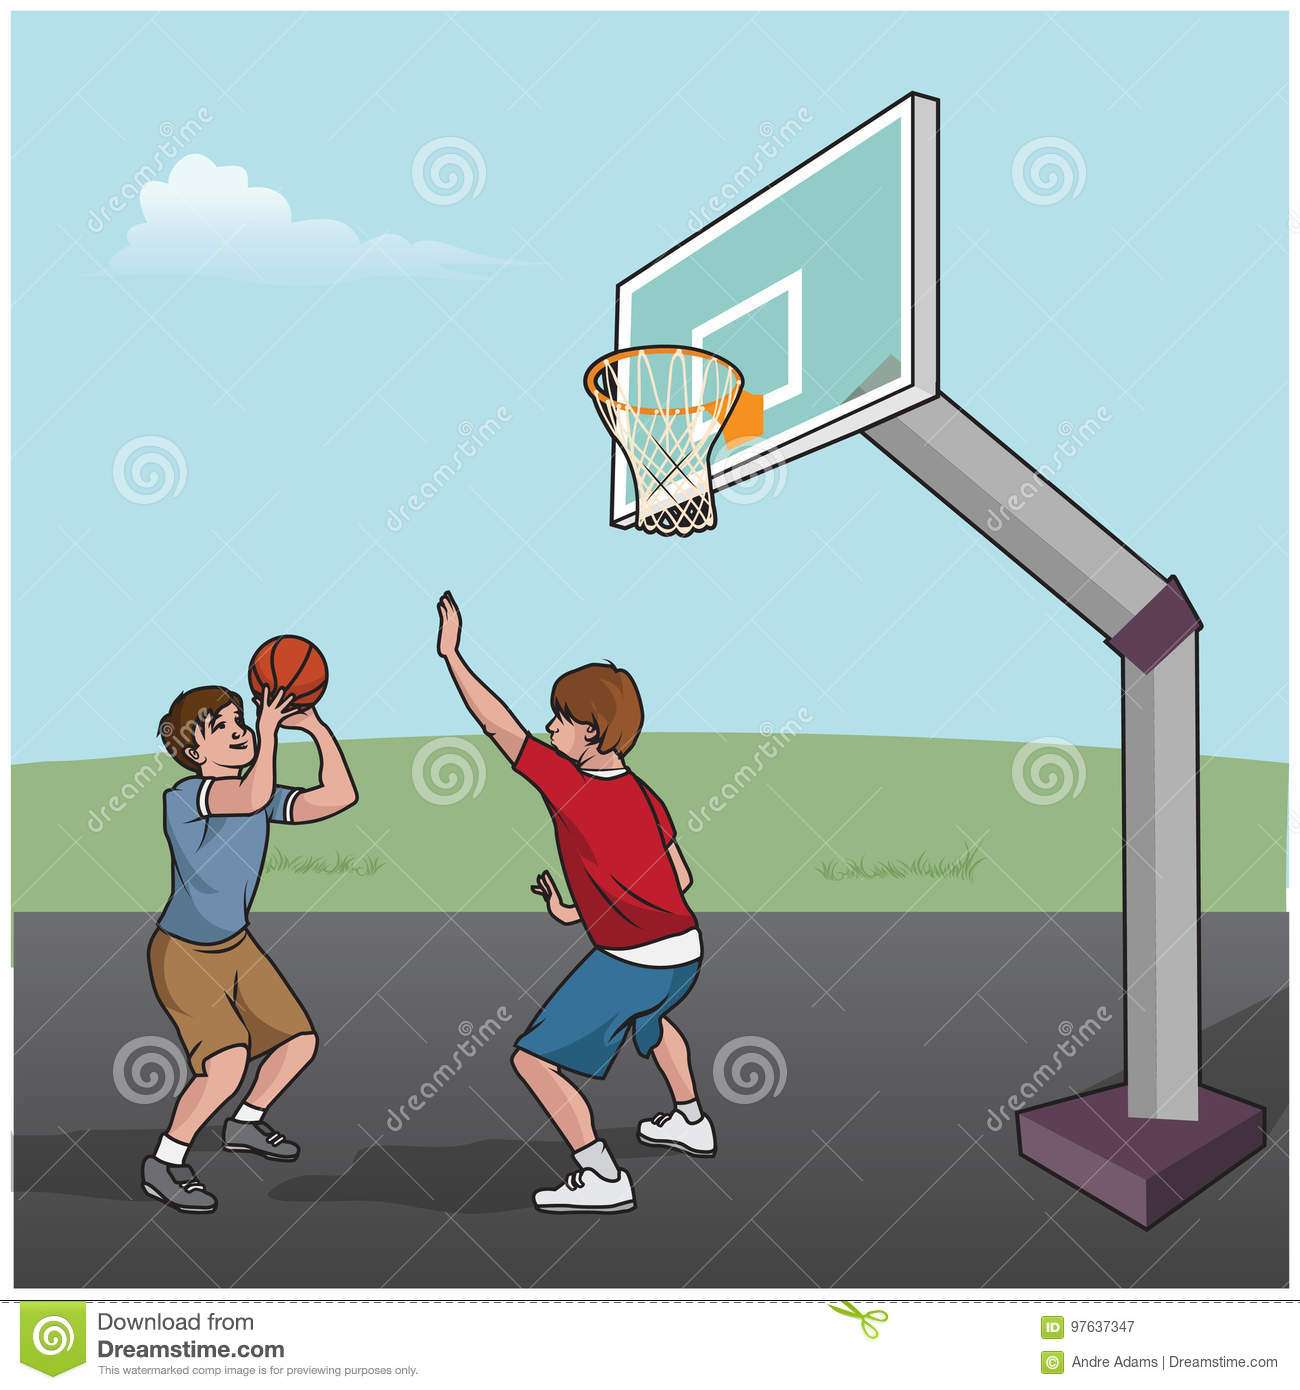 Basketball Game Boys Stock Vector Illustration Of Pose 97637347